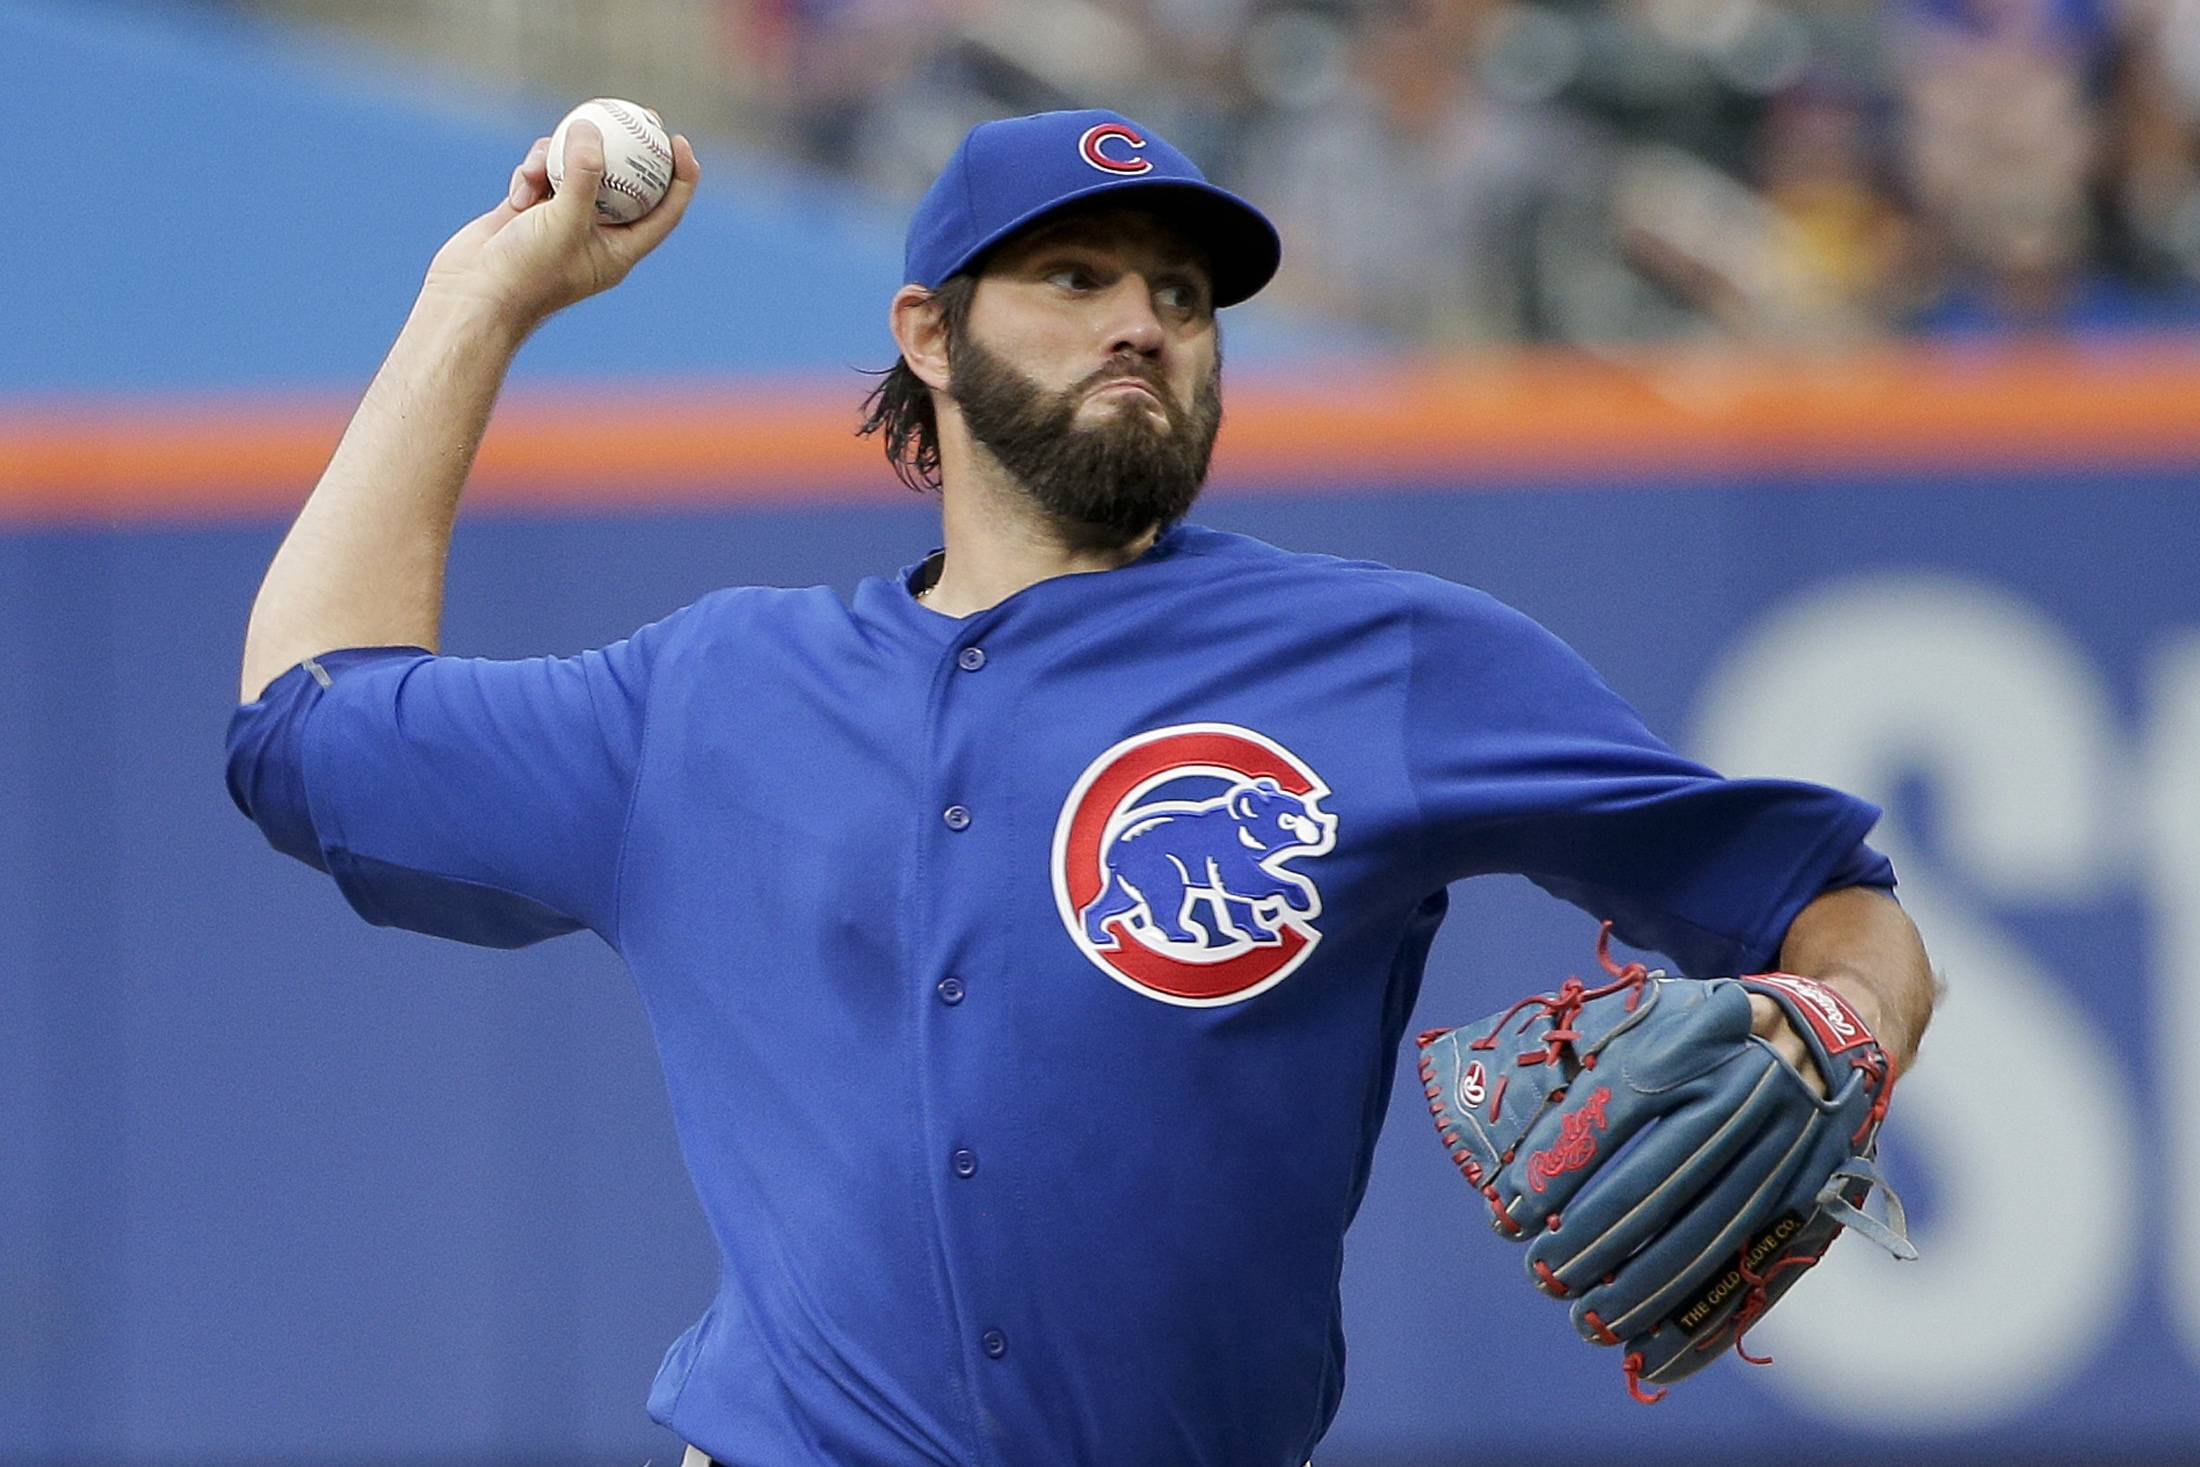 Chicago Cubs starting pitcher Jason Hammel delivers against the New York Mets during the first inning of a baseball game Friday, July 1, 2016, in New York. (AP Photo/Julie Jacobson)